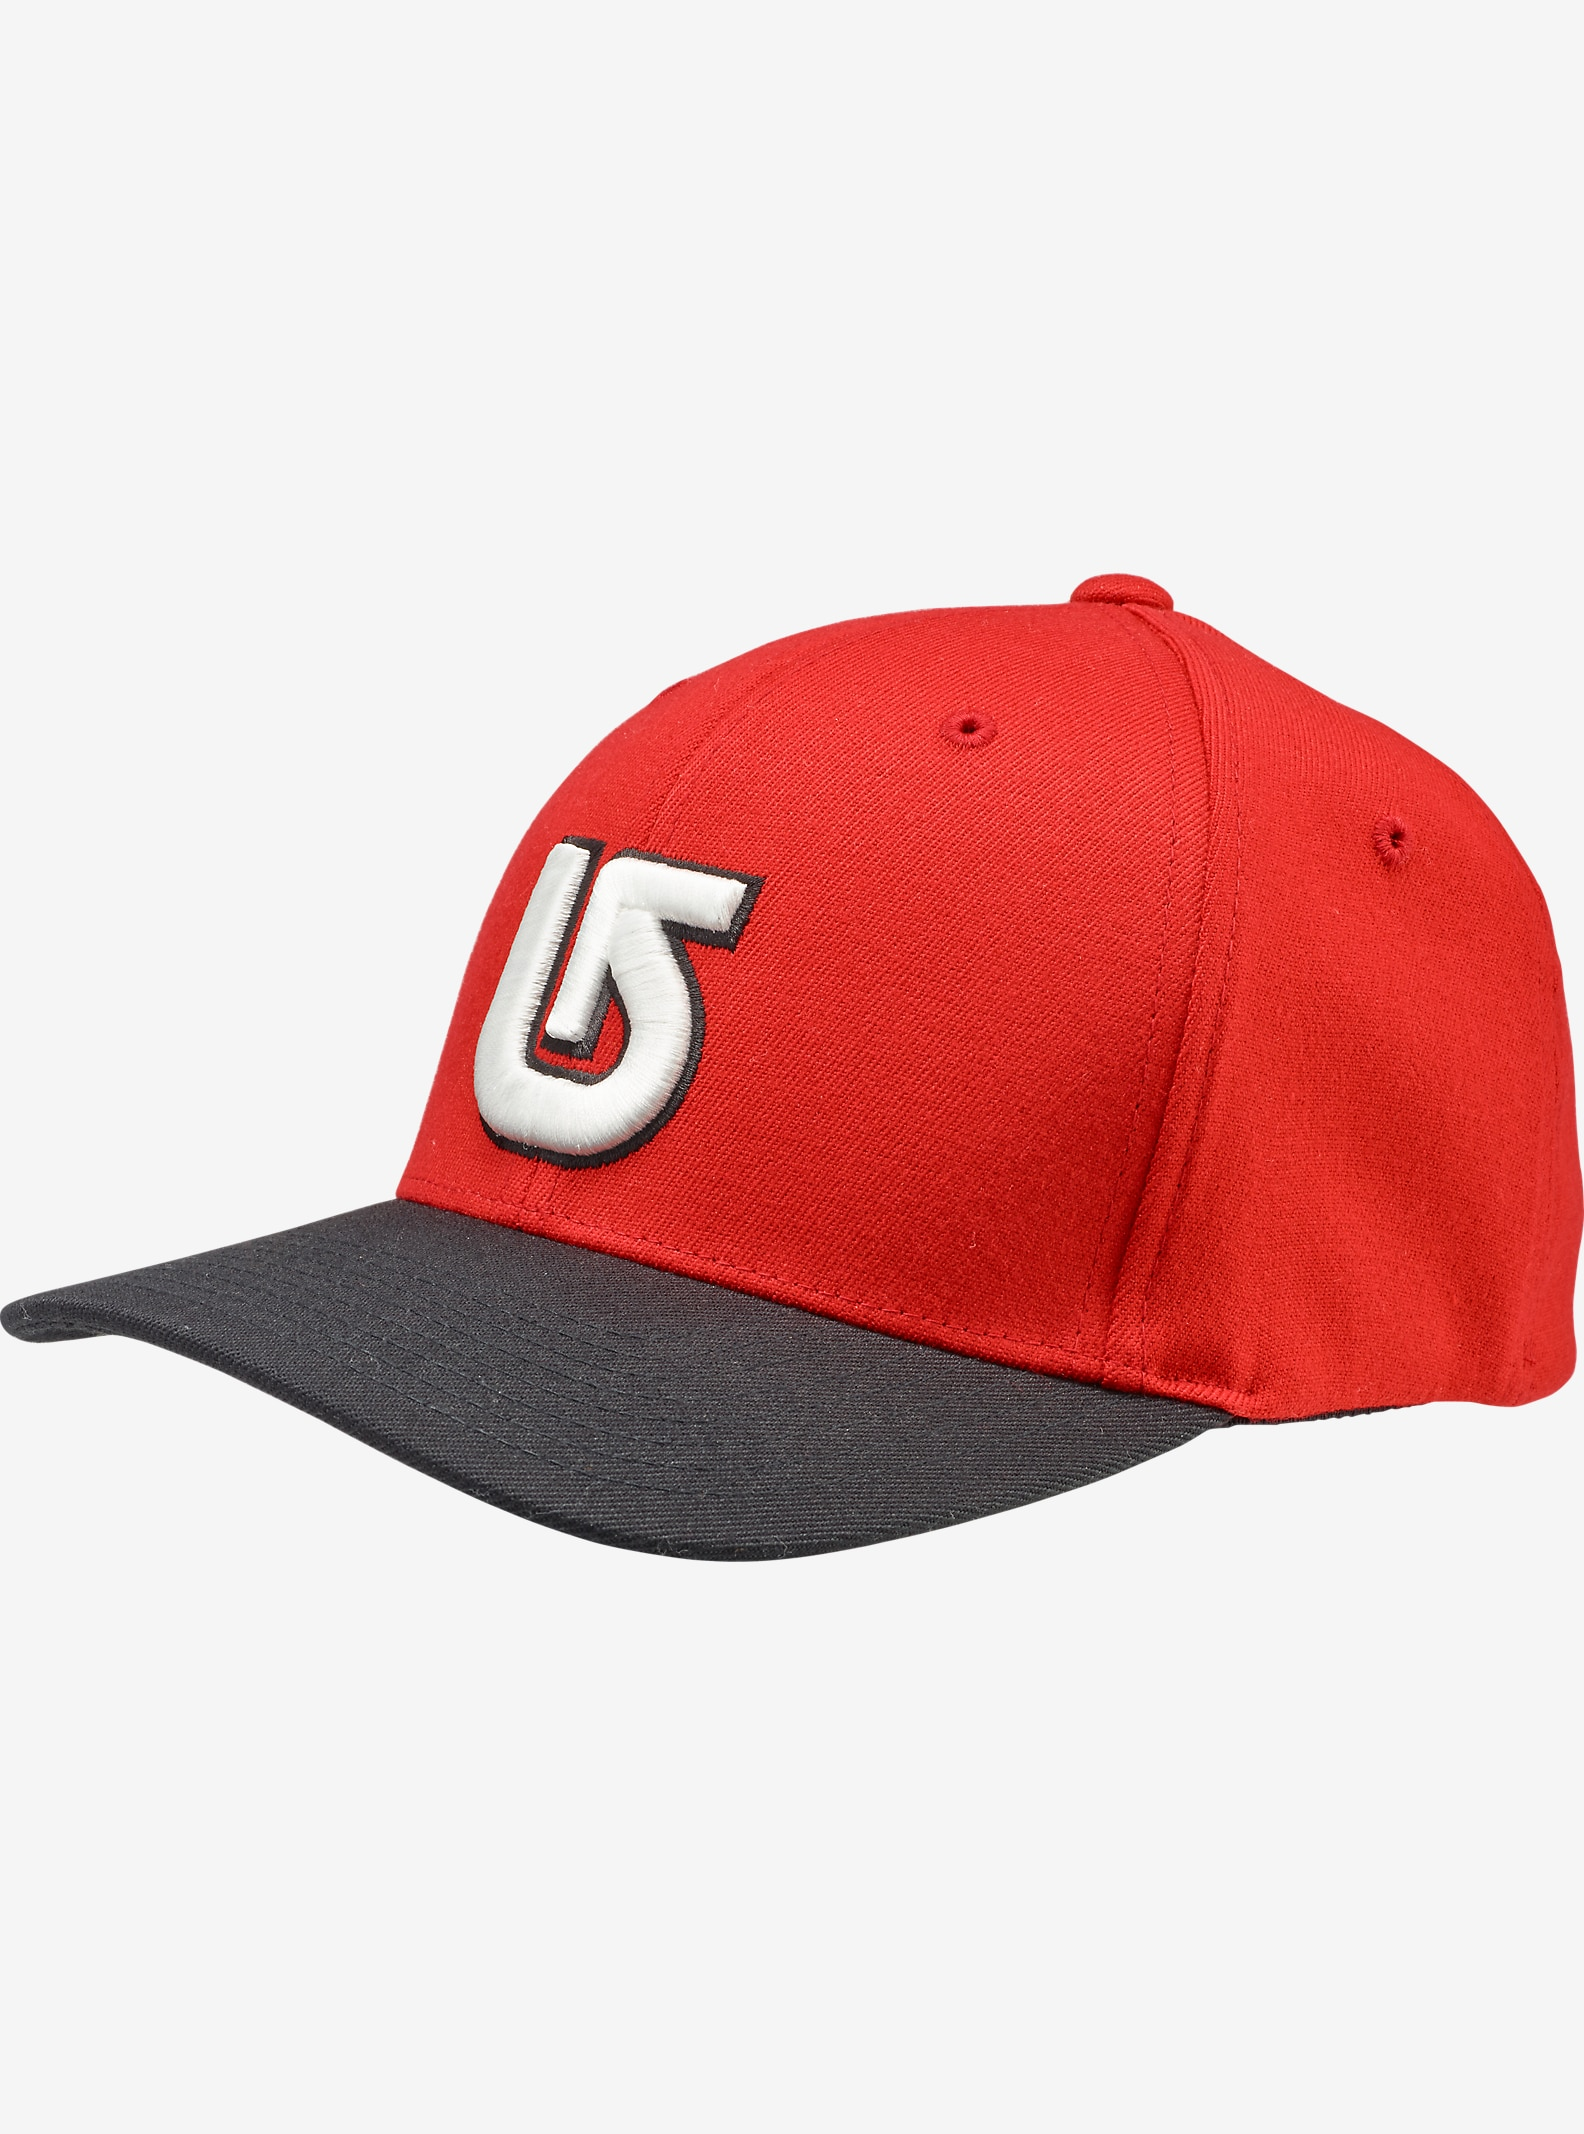 Burton Boys' Striker Flex Fit Hat shown in Process Red